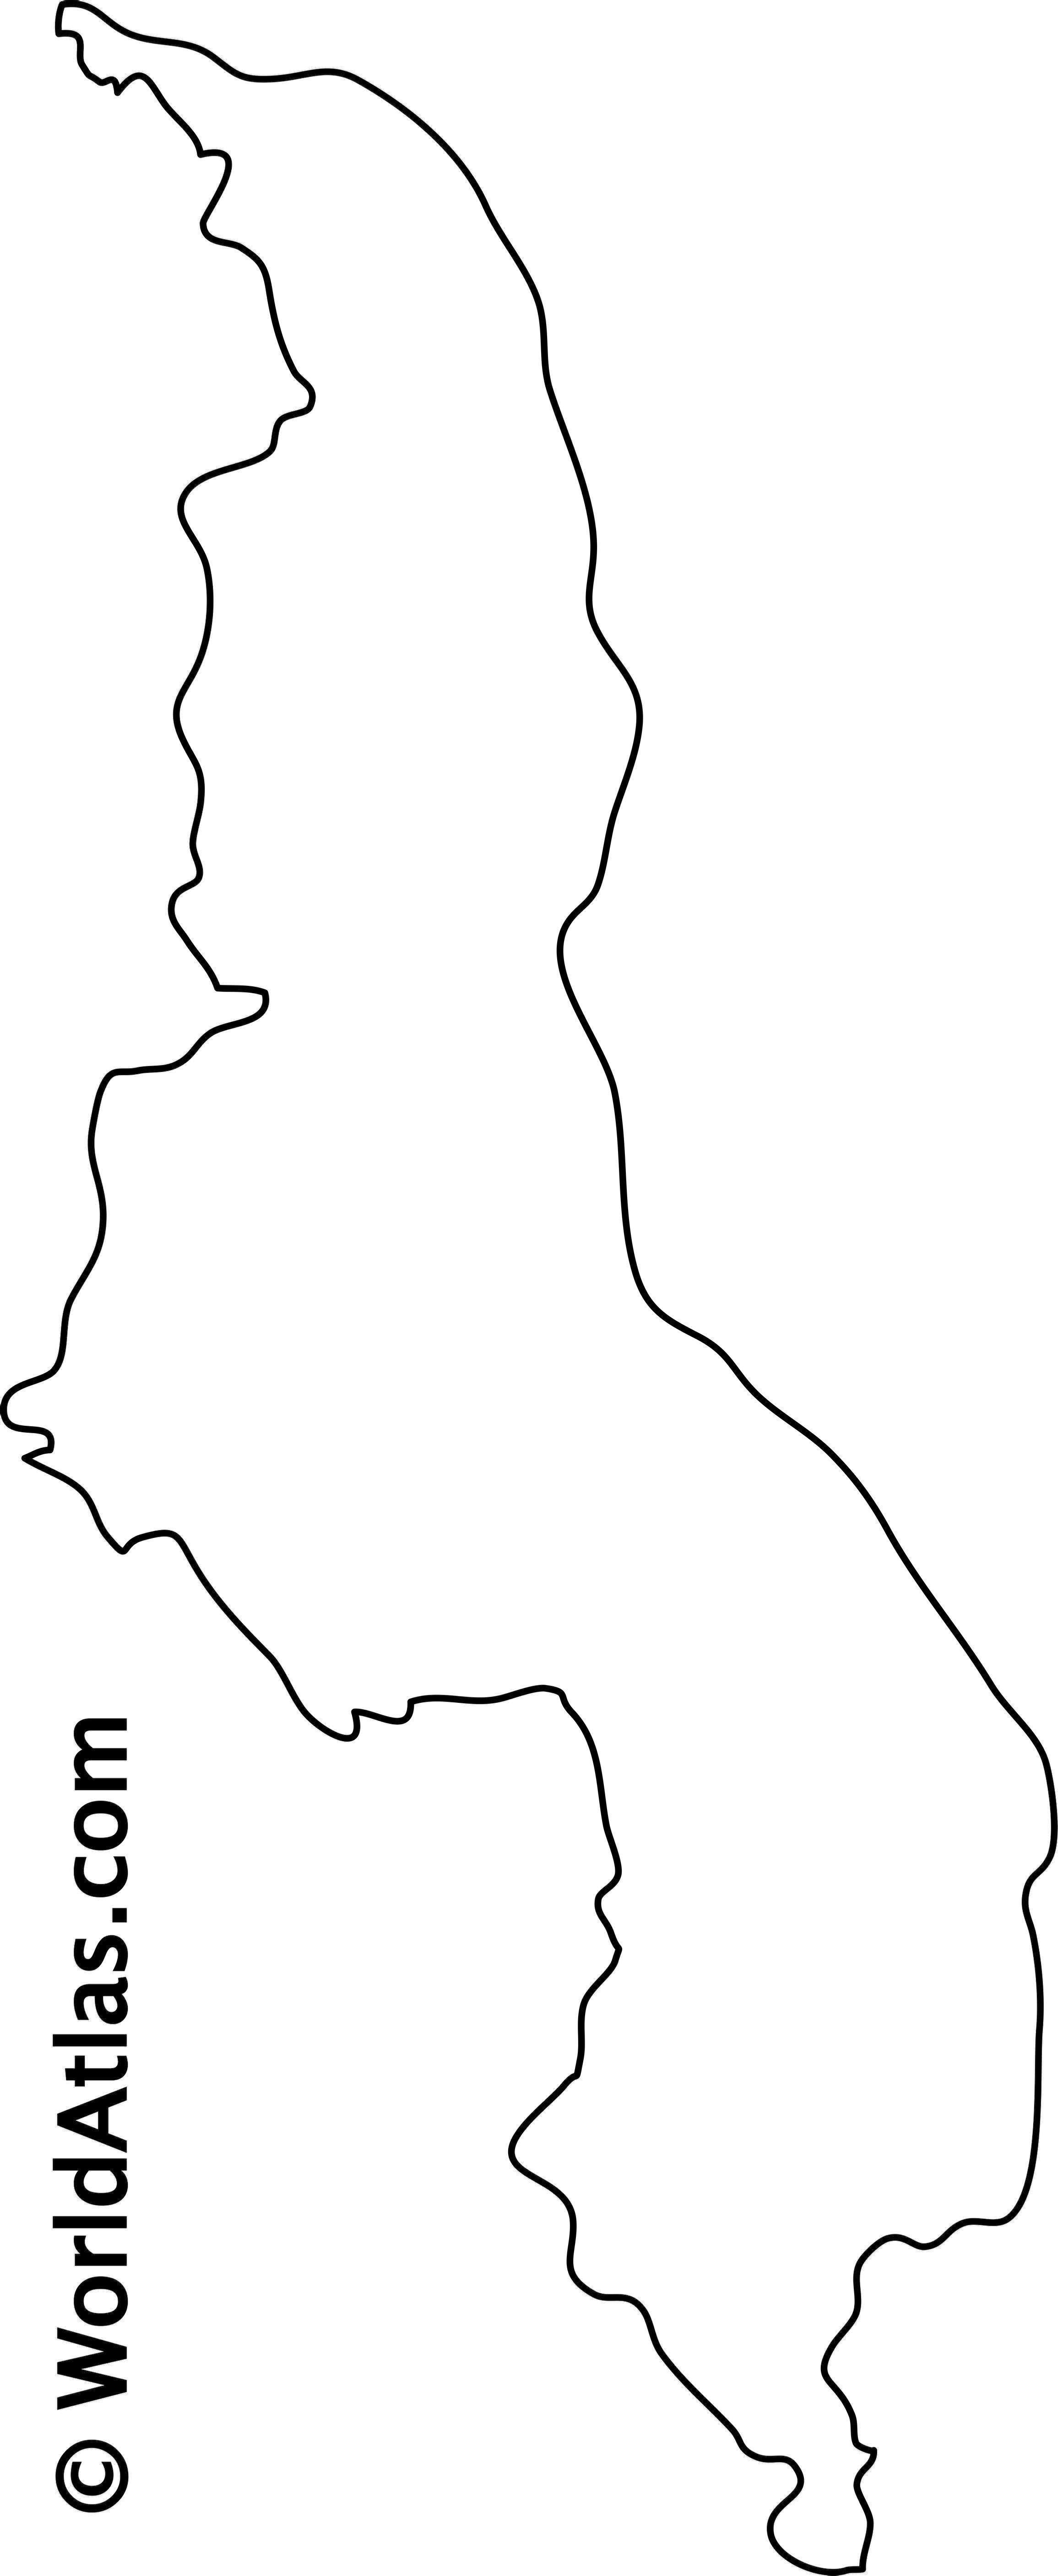 Blank Outline Map of Malawi